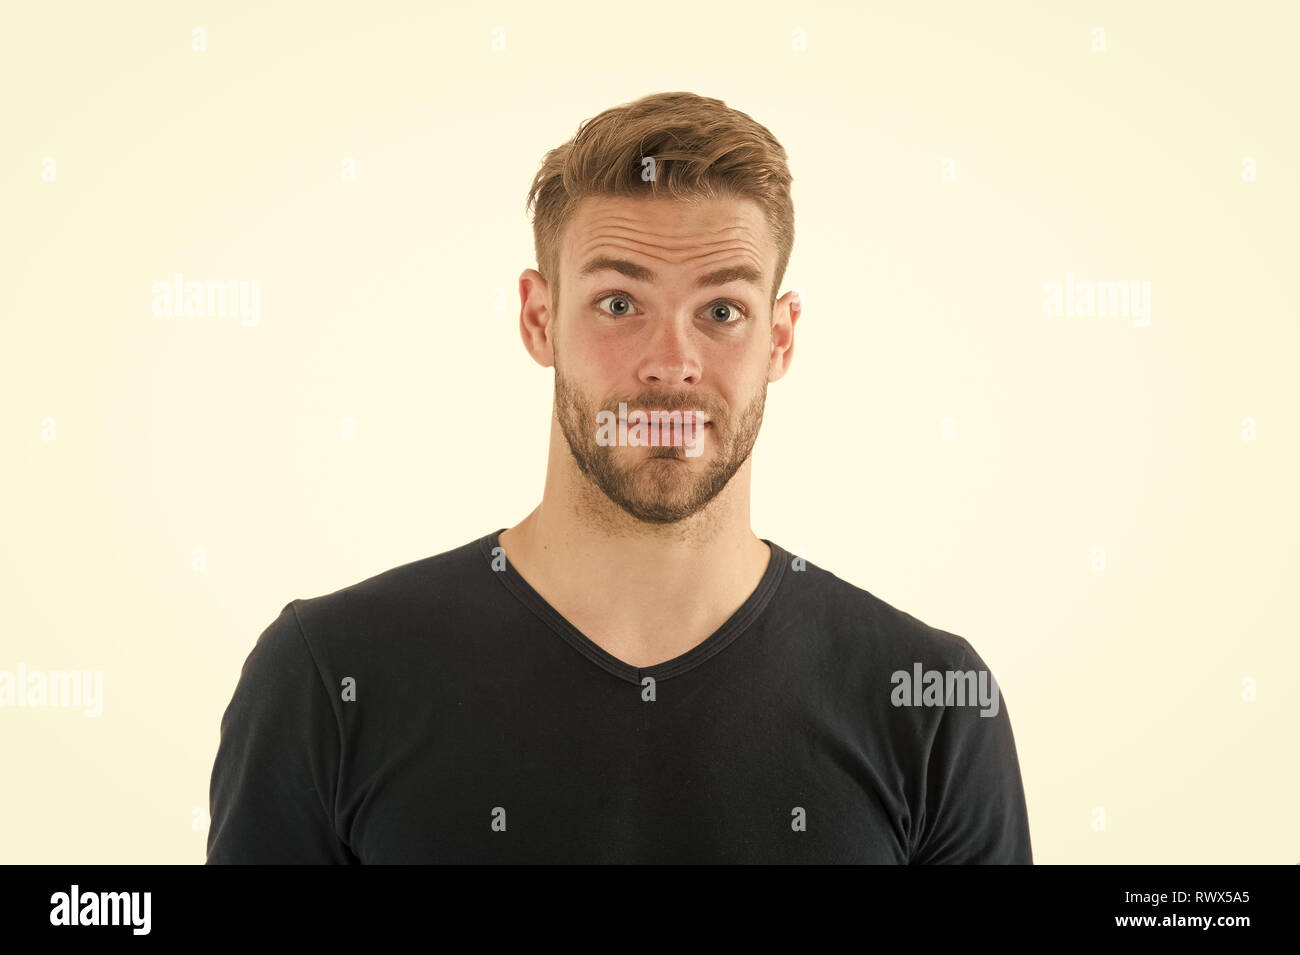 I did not expect that. Man with bristle surprised face isolated white background. Pleasant surprise concept. Man with beard unshaven guy looks handsome good mood. Guy happy surprised. - Stock Image